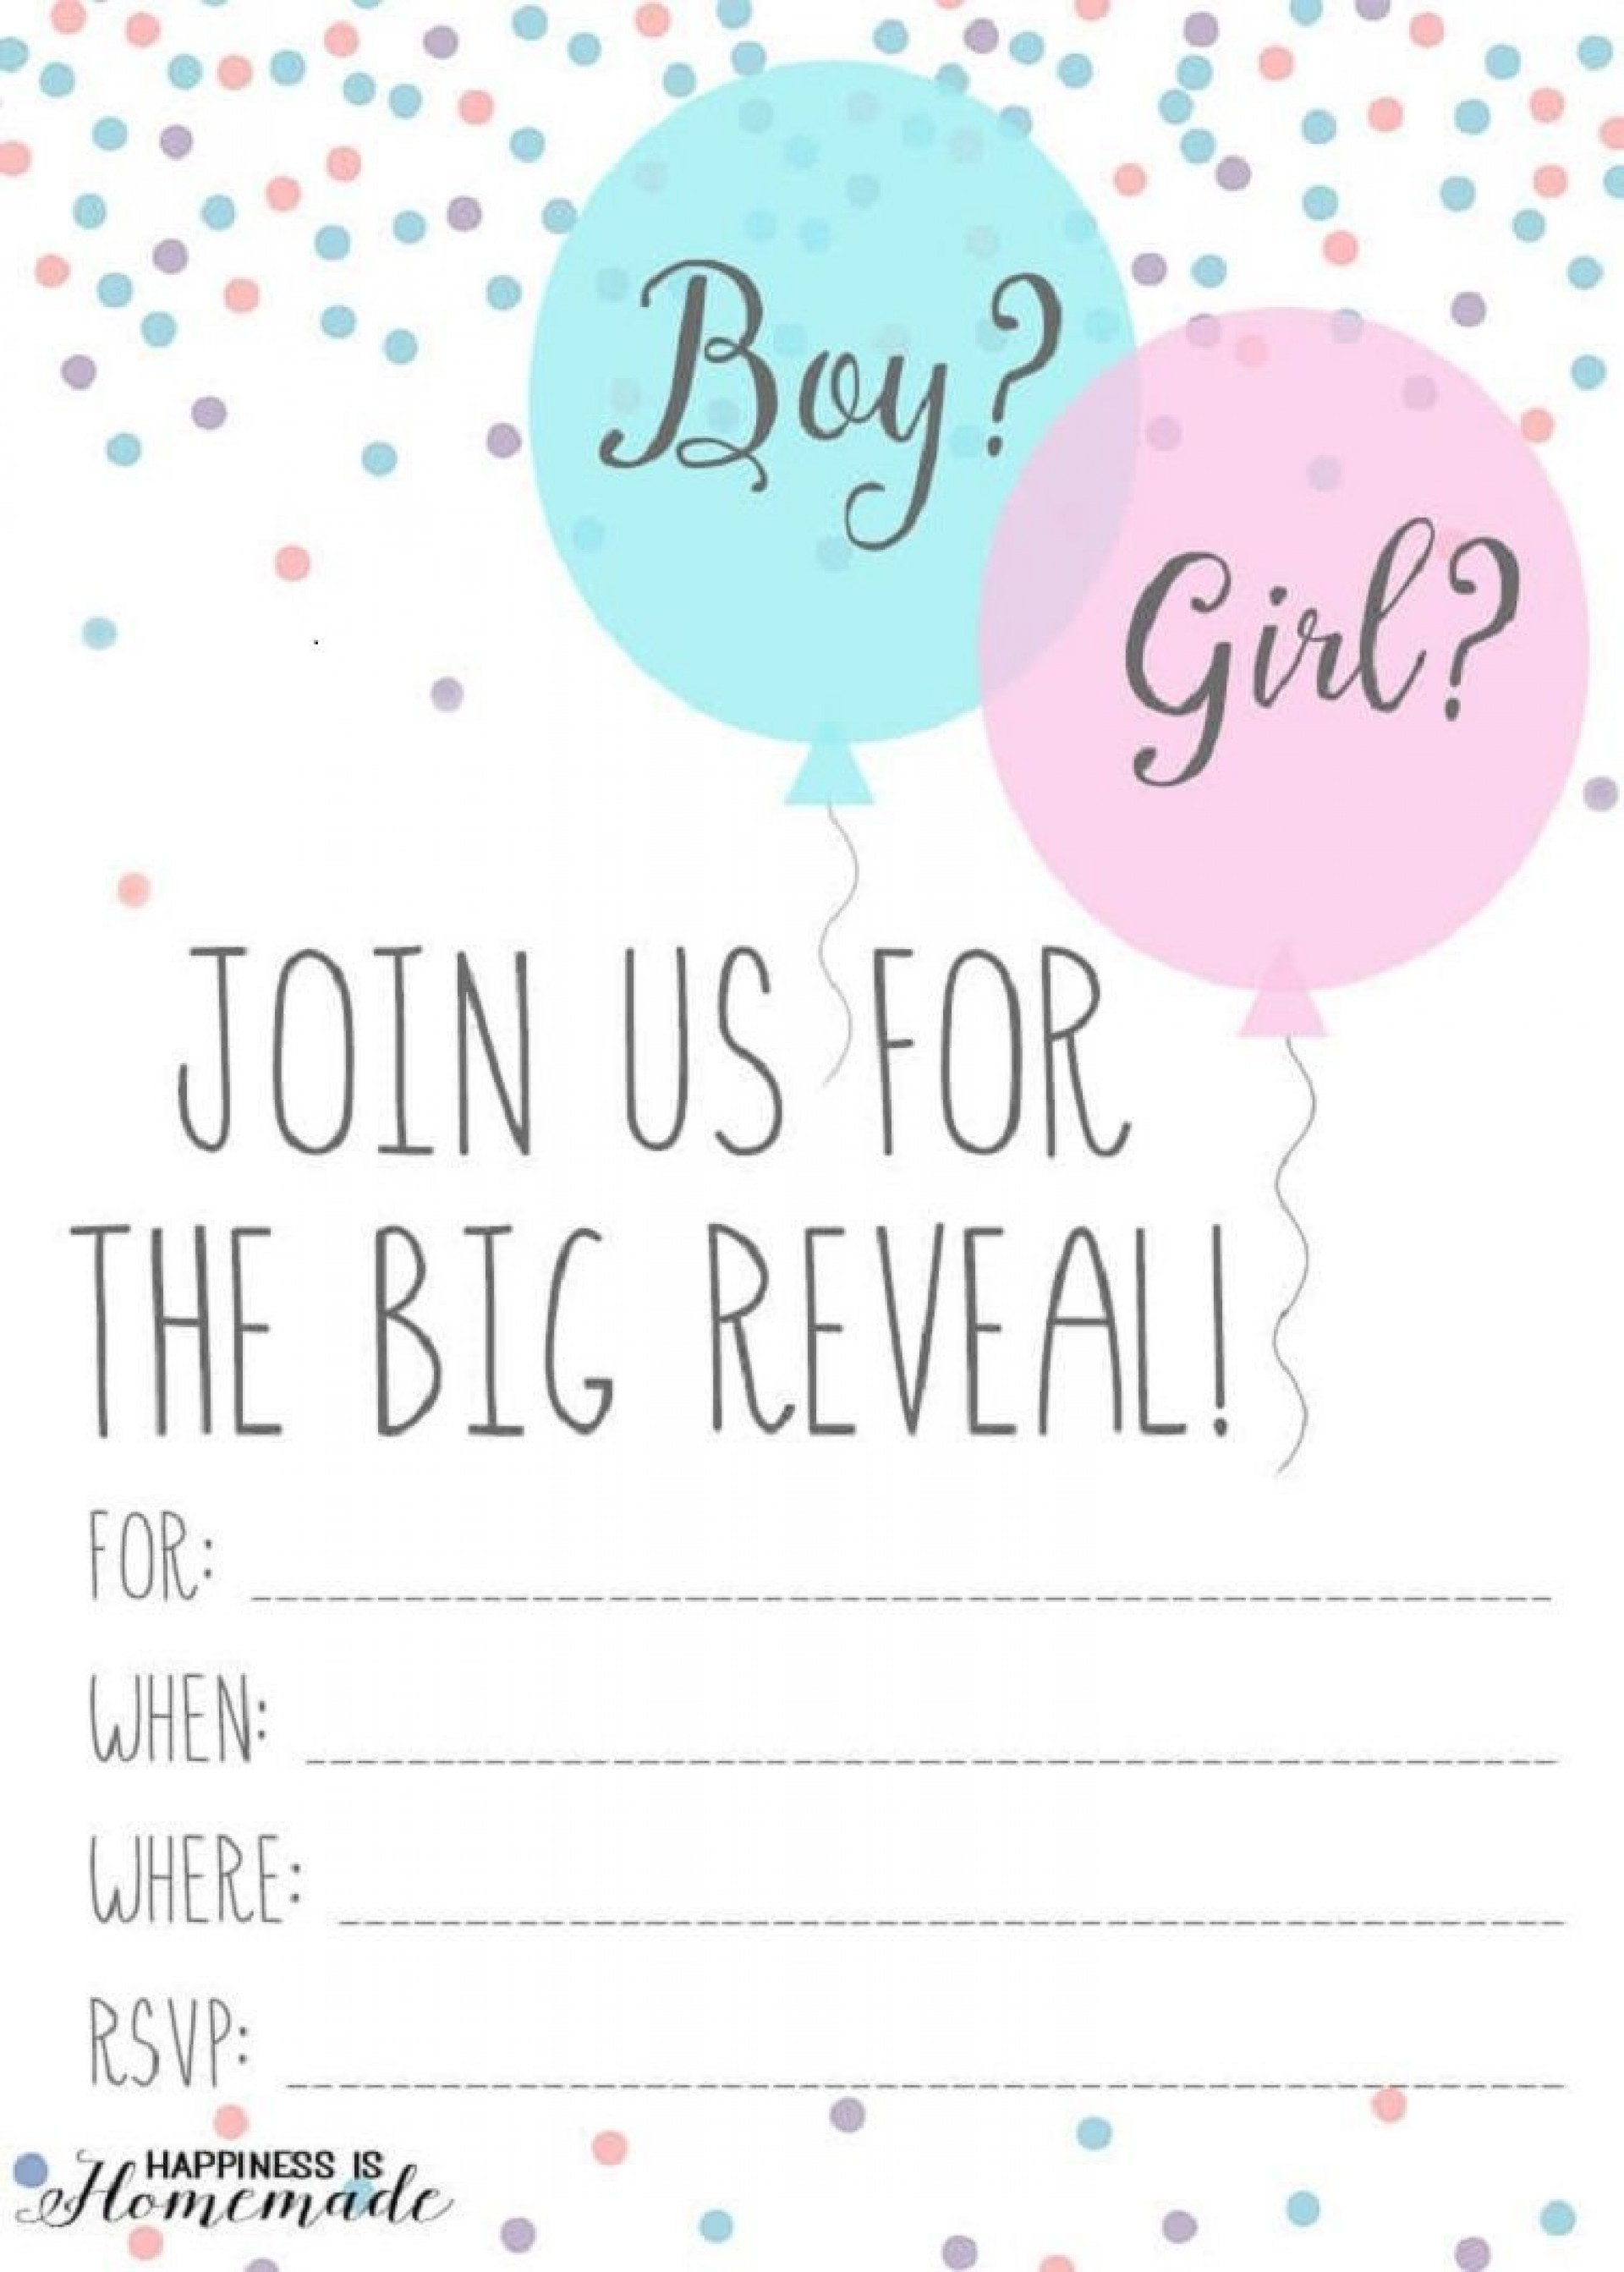 005 Remarkable Gender Reveal Invitation Template Highest Quality  Templates Party Free Printable Maker1920